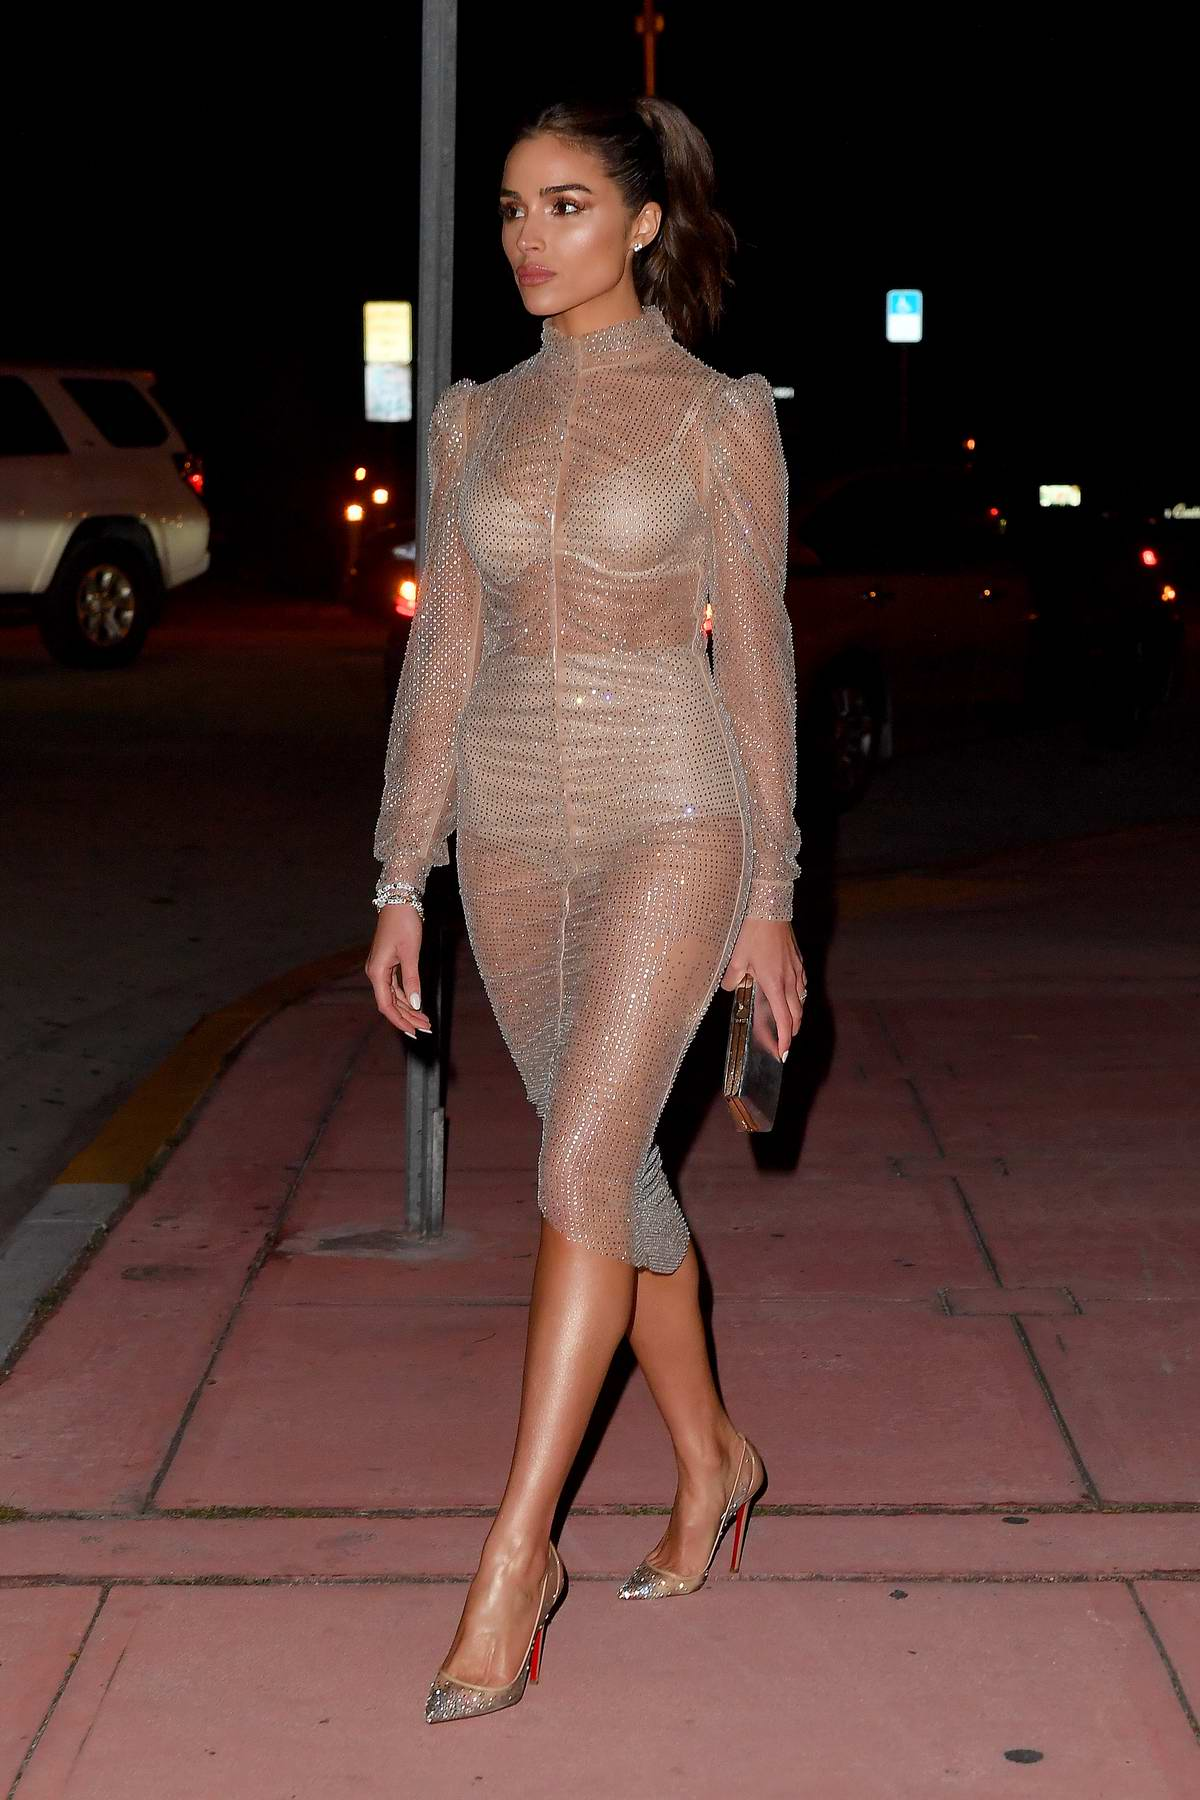 Olivia Culpo stuns in a sheer dress as she steps out in Miami Beach, Florida